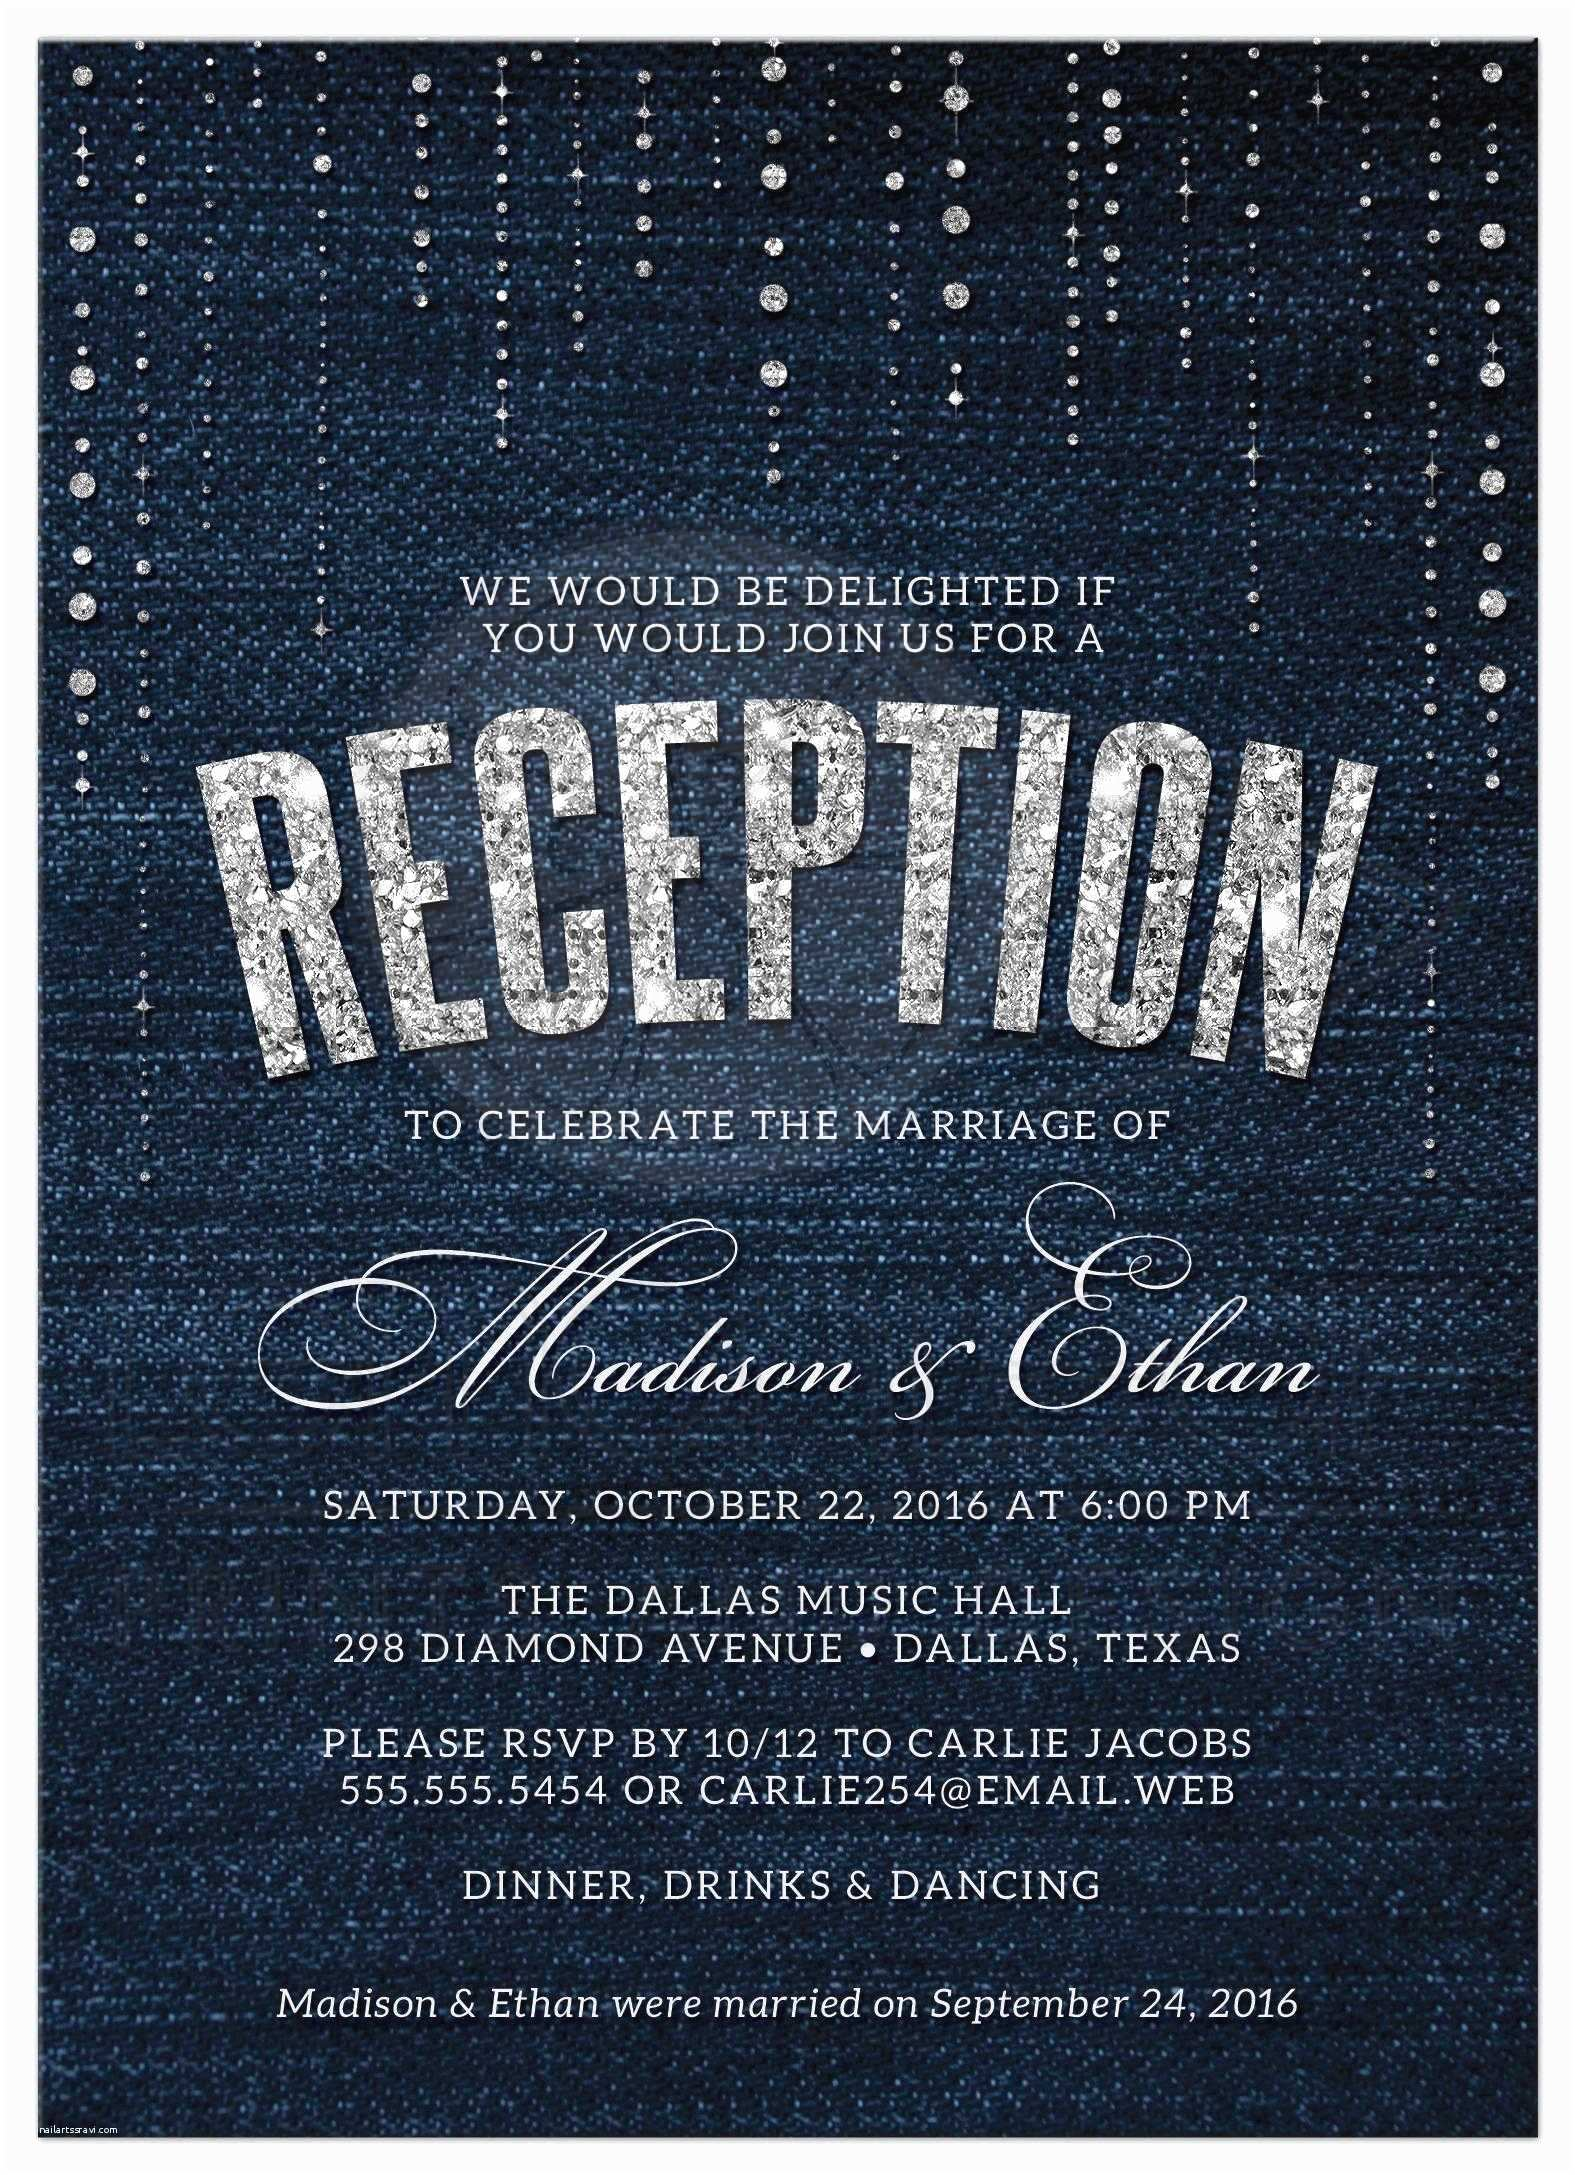 Wedding Reception Invitations Post Wedding Reception Ly Invitations Denim & Diamonds